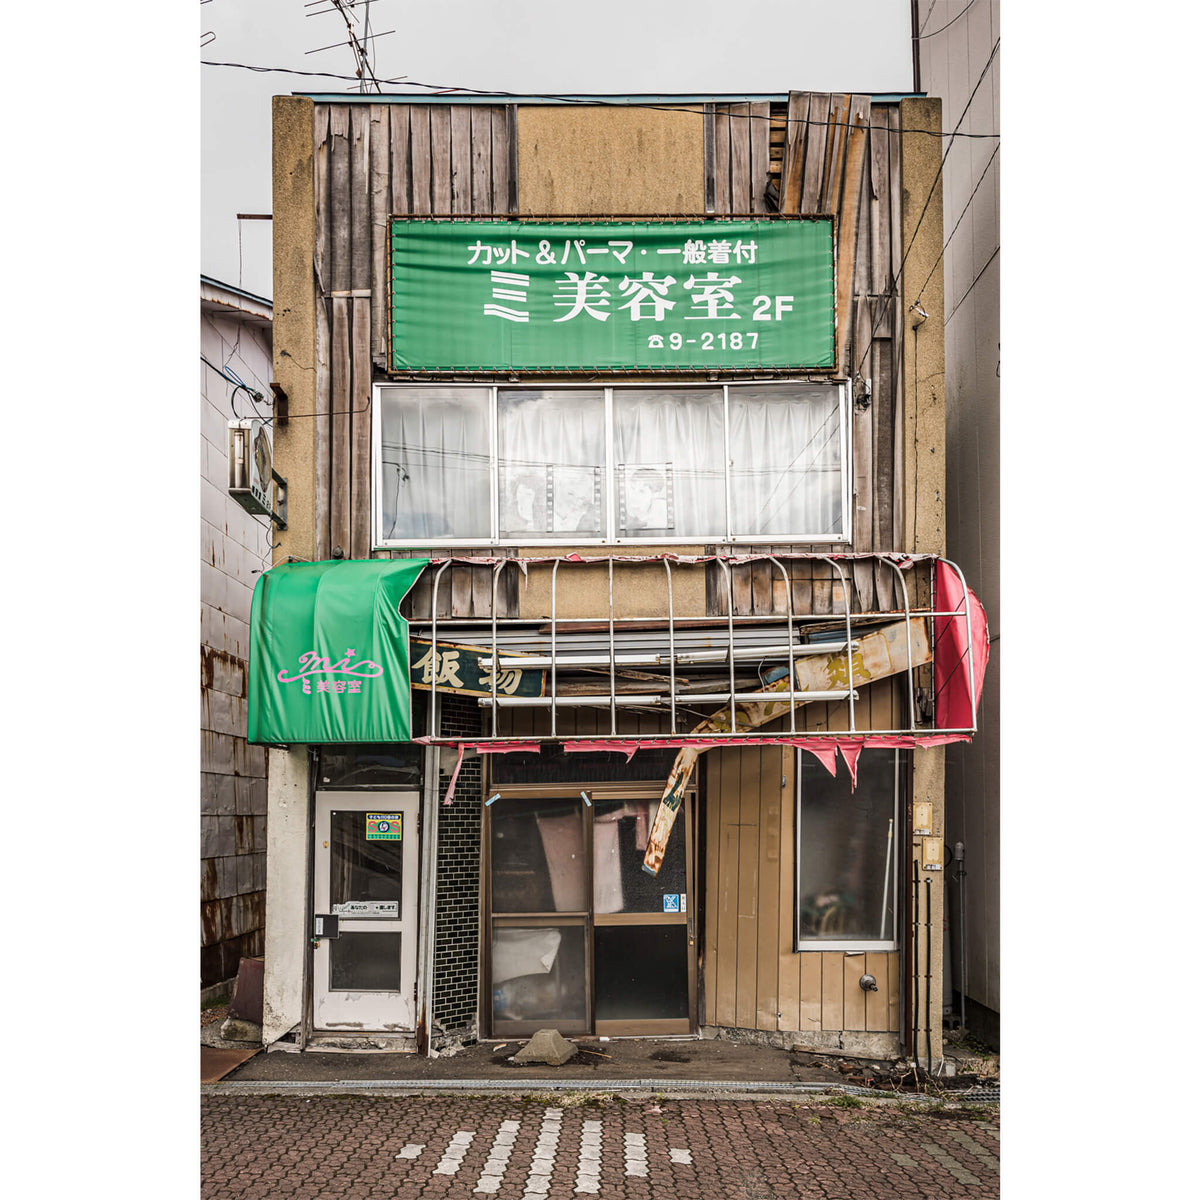 Shopfront | Streetscapes of Yubari